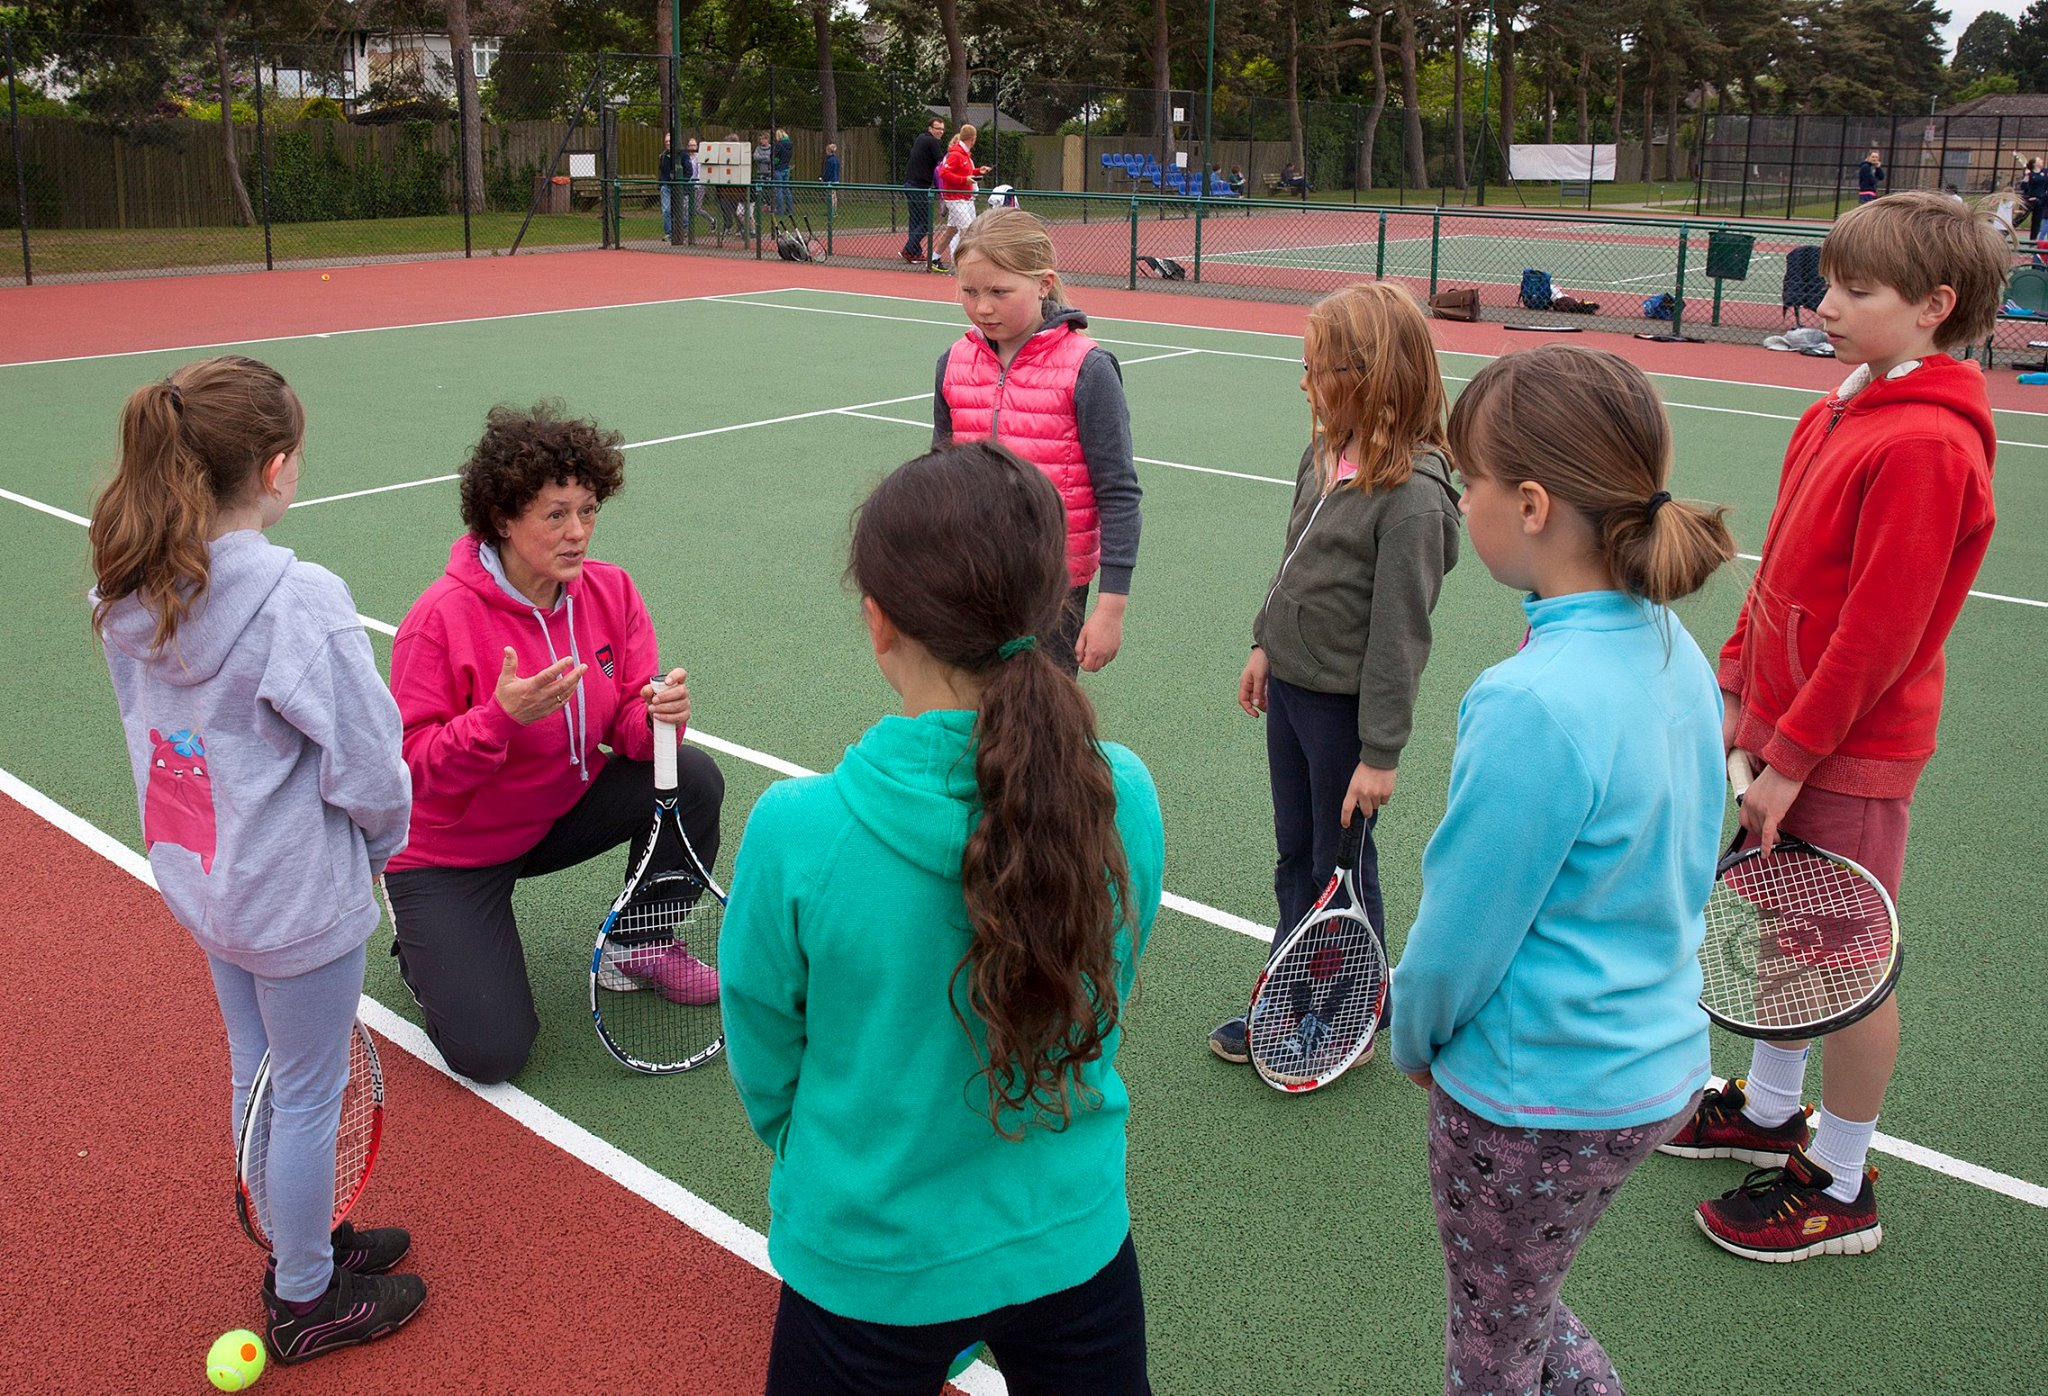 Coach Maddie on-court witha group of under-10 year old tennis players.